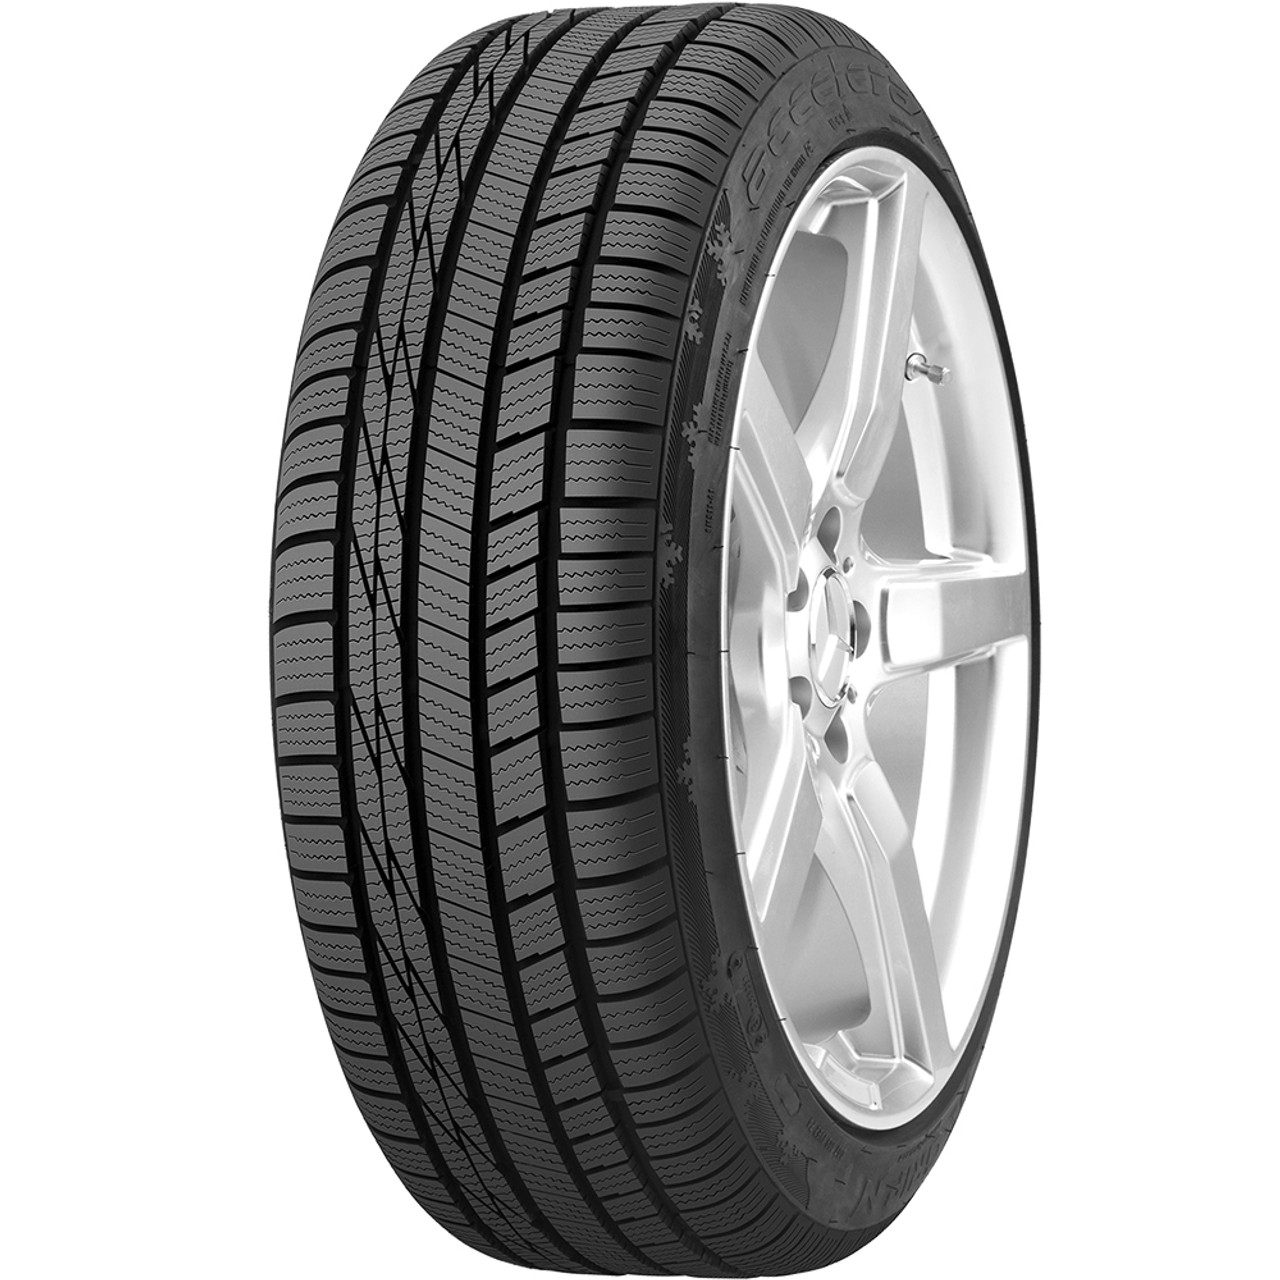 Set of 4 Accelera X Grip-N Winter Performance Radial Tires-215//60R16 95H FOUR